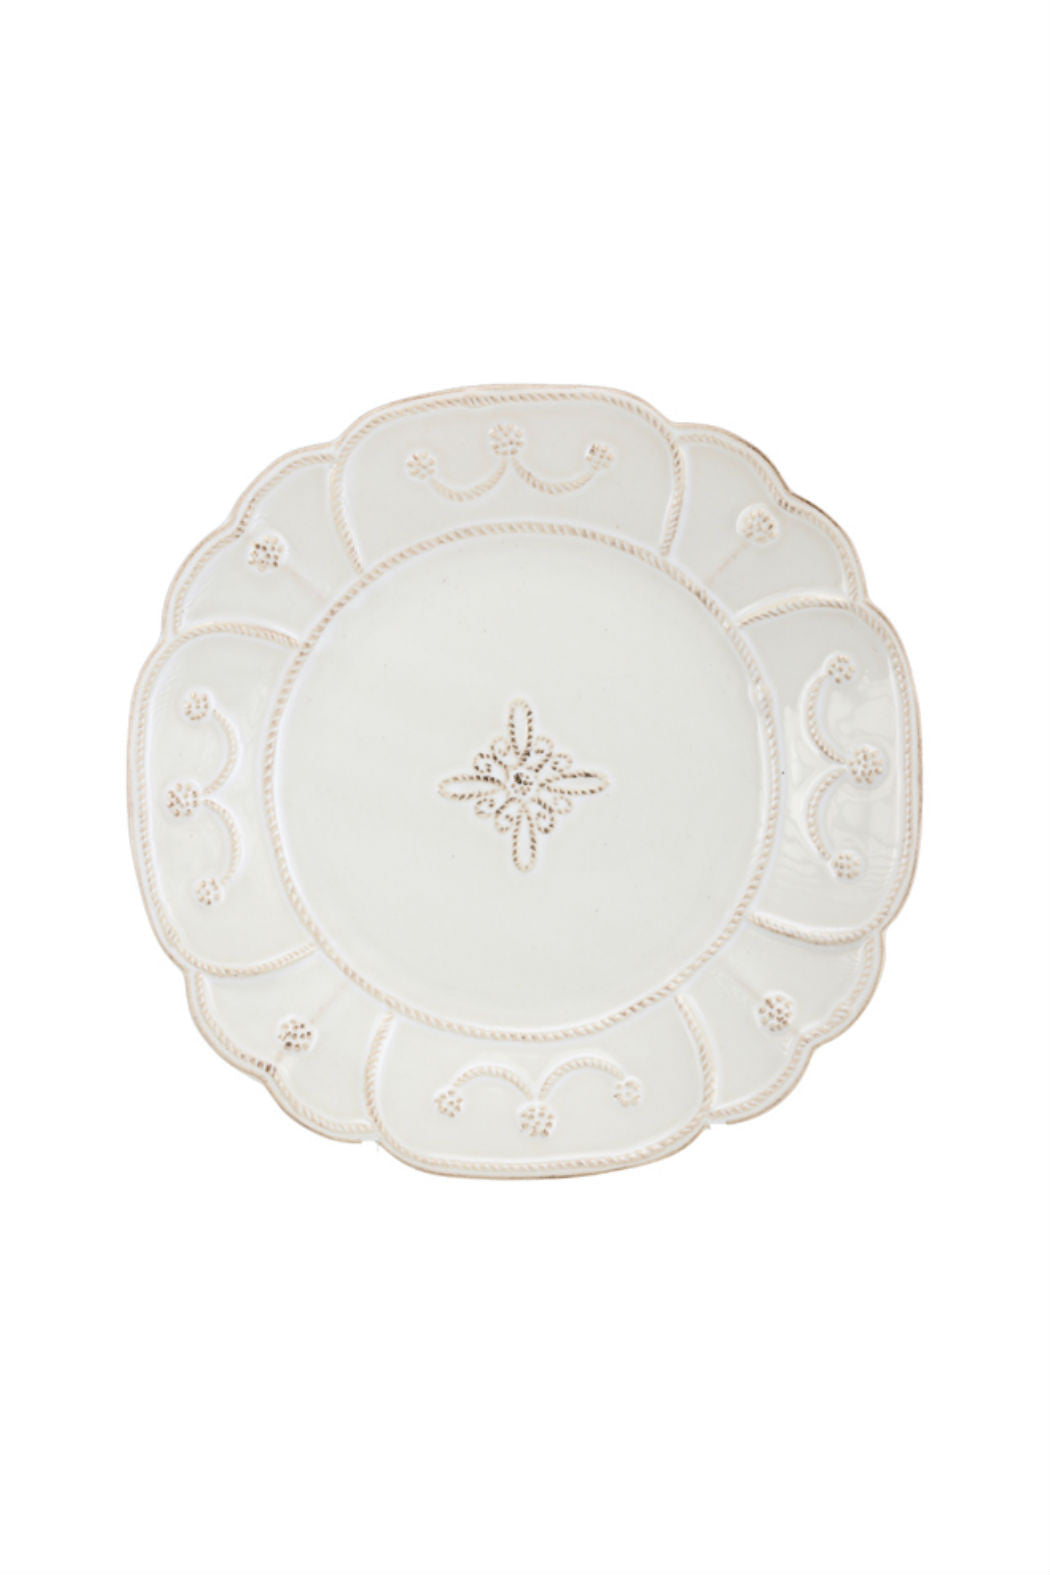 Juliska Jardins du Monde Whitewash Salad Plate - New Orientation